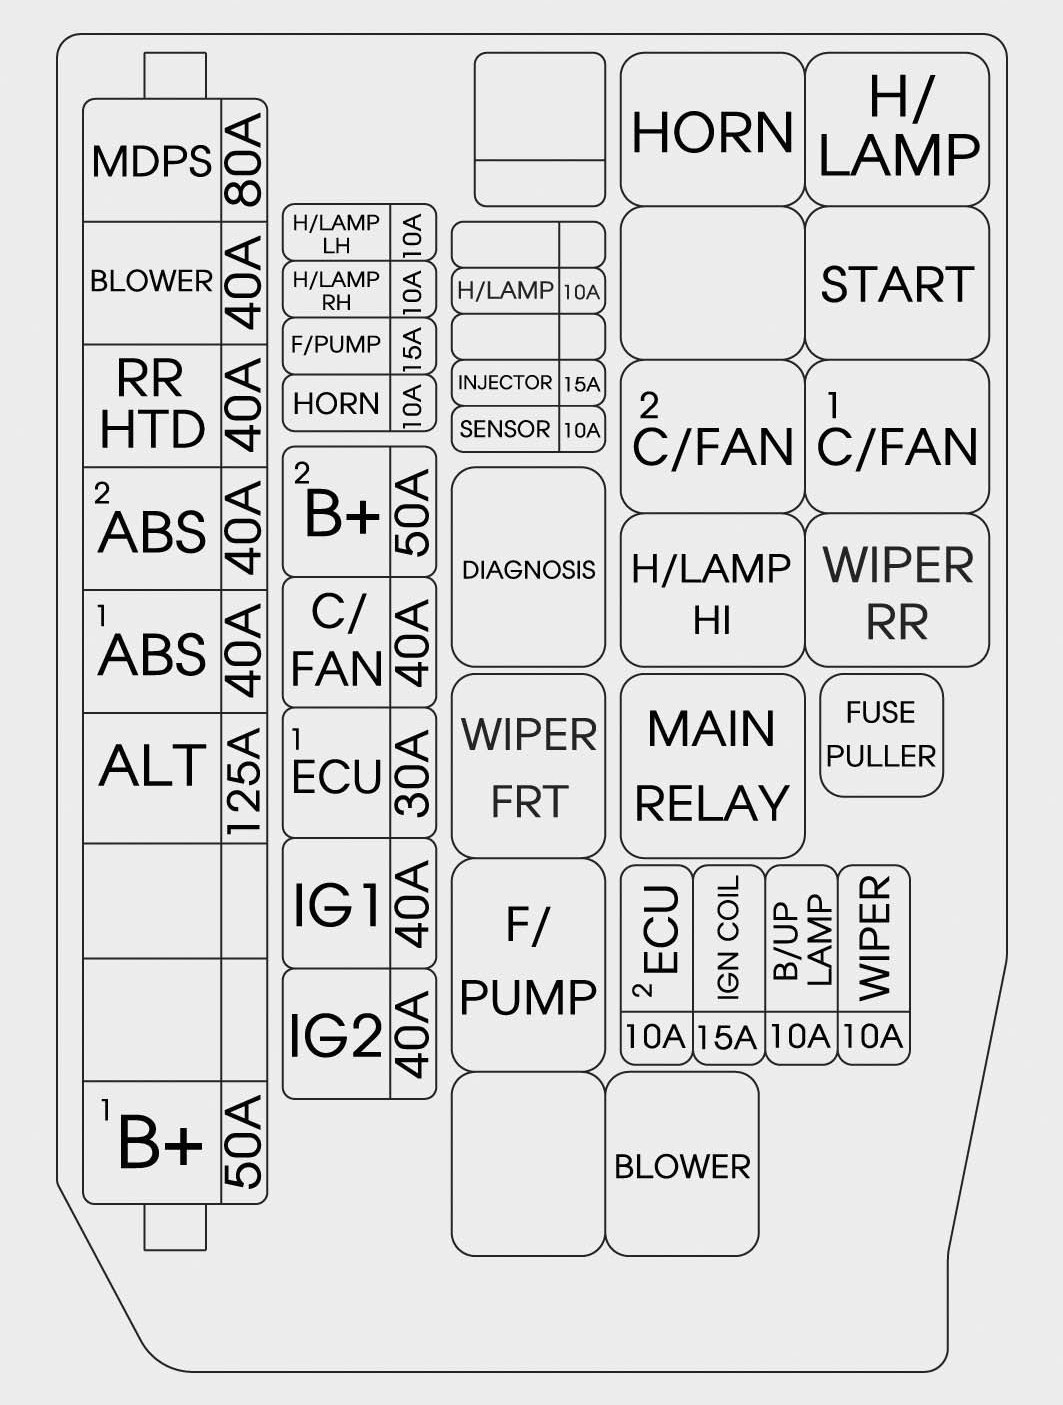 hight resolution of 2014 elantra fuse diagram wiring diagrams posts 2014 hyundai elantra fuse diagram 2014 elantra fuse diagram